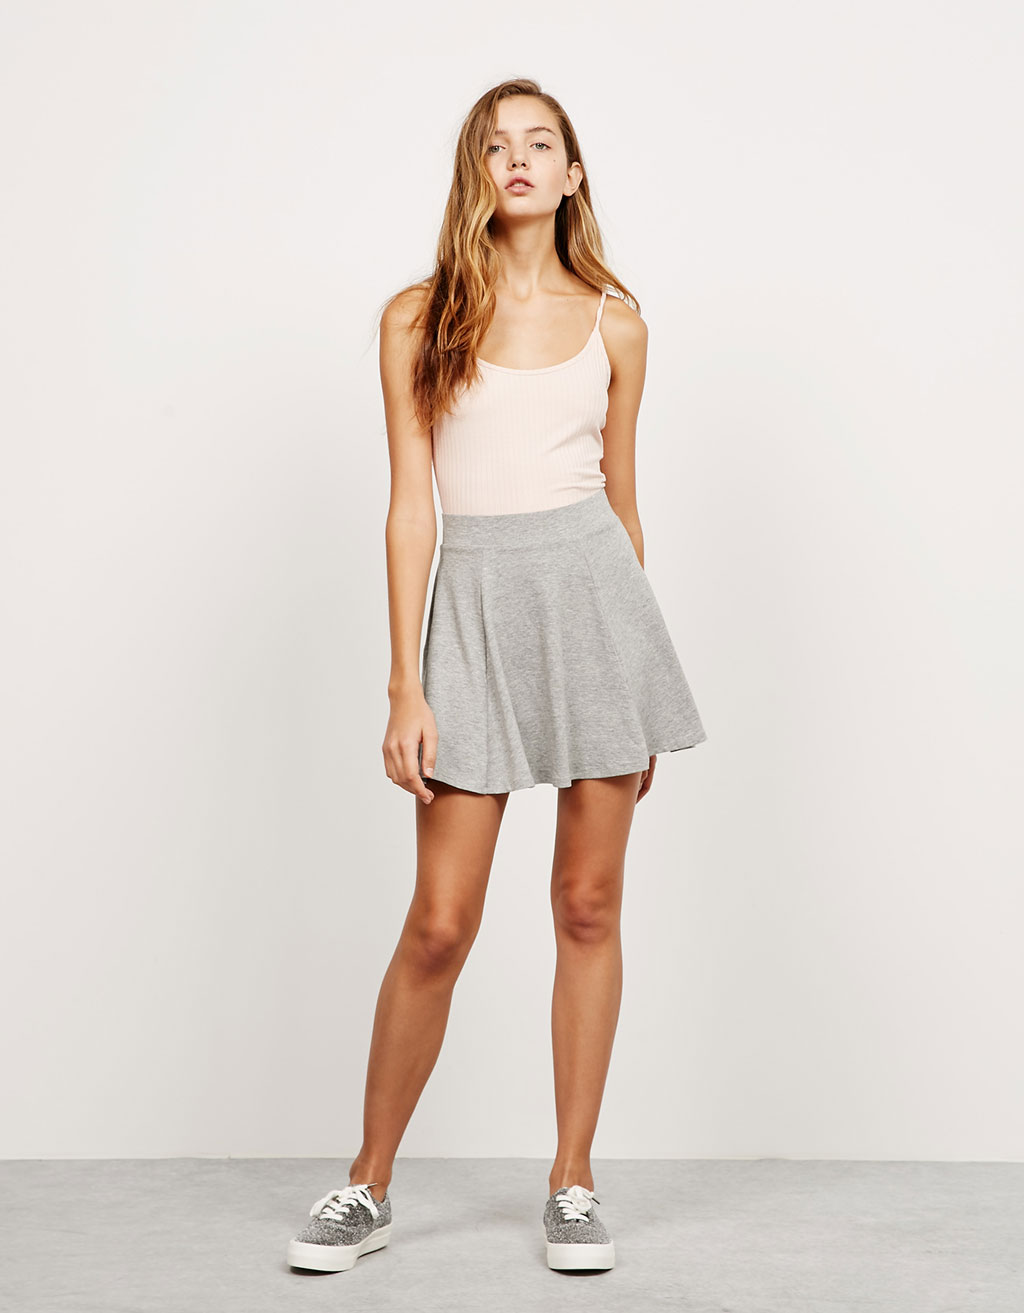 BSK 'jumper skirt